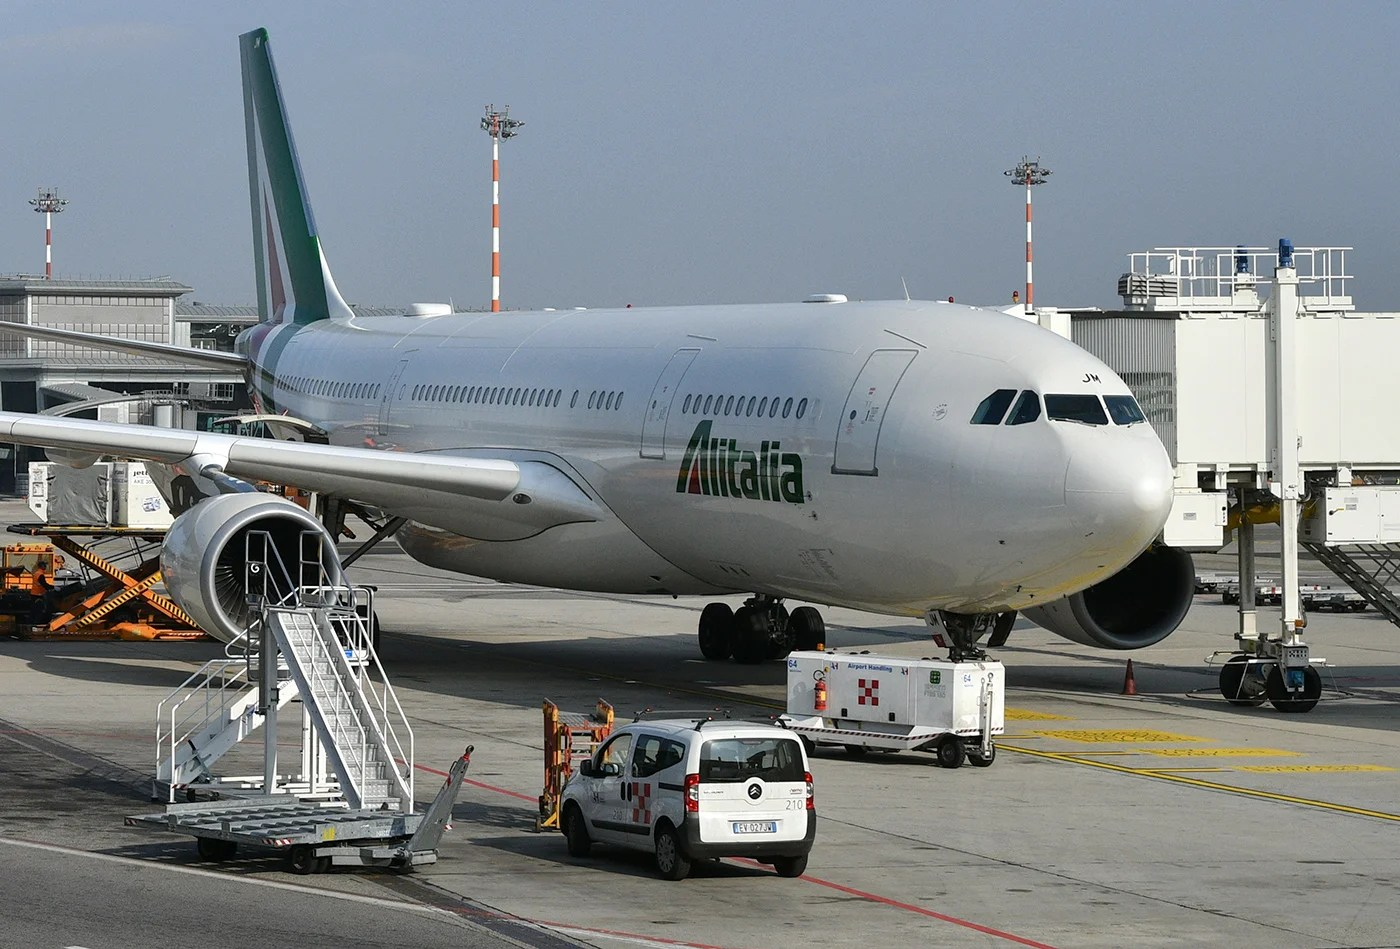 Flight Review: Alitalia (Airbus A330) New York to Milan